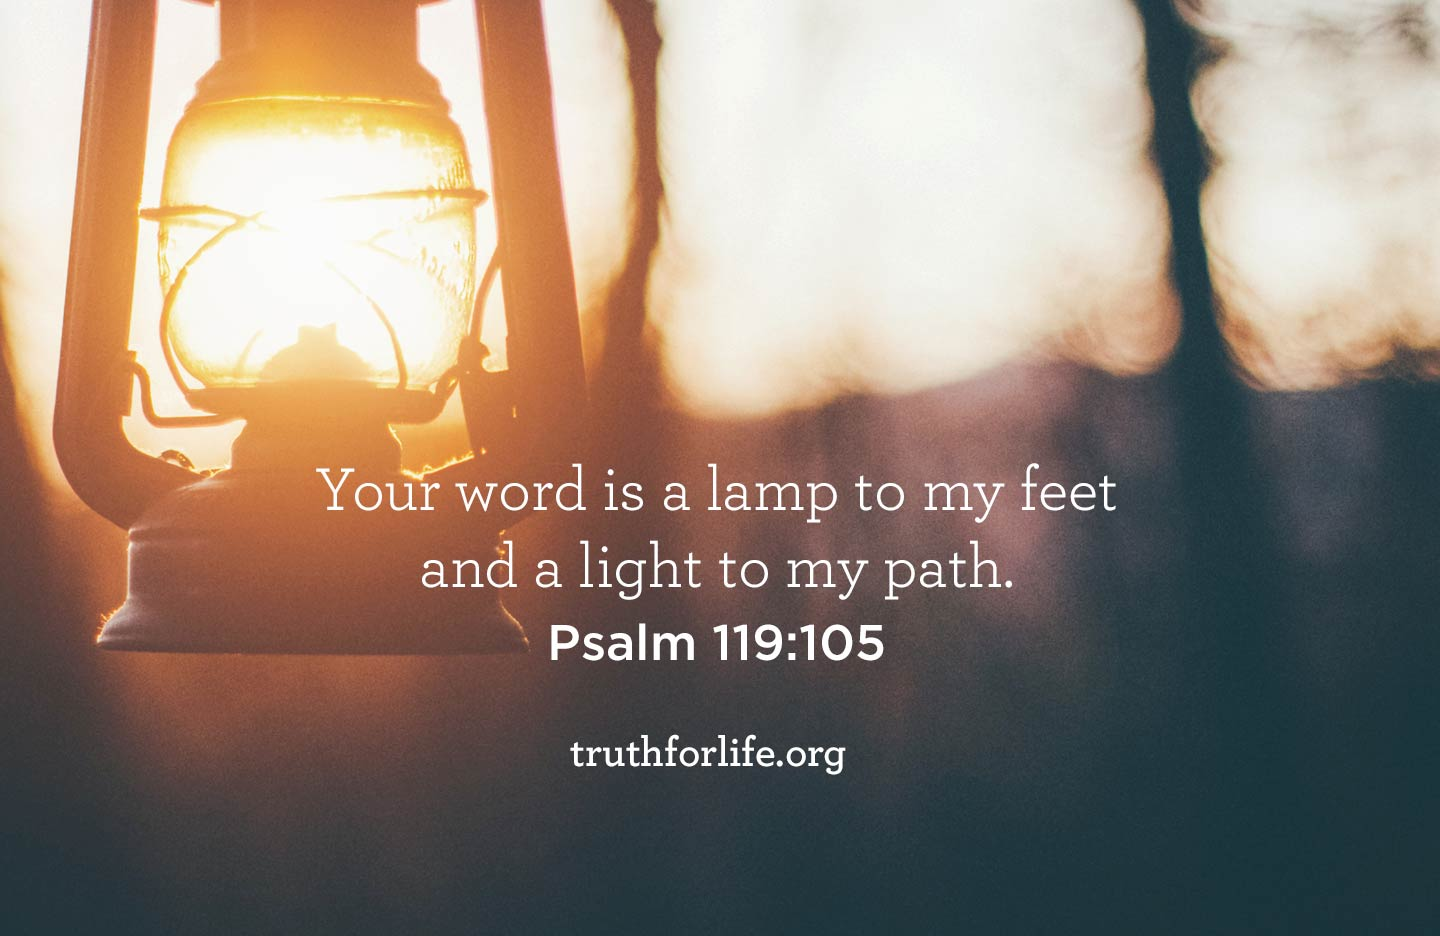 Your word is a lamp to my feet and a light to my path. - Psalm 119:105